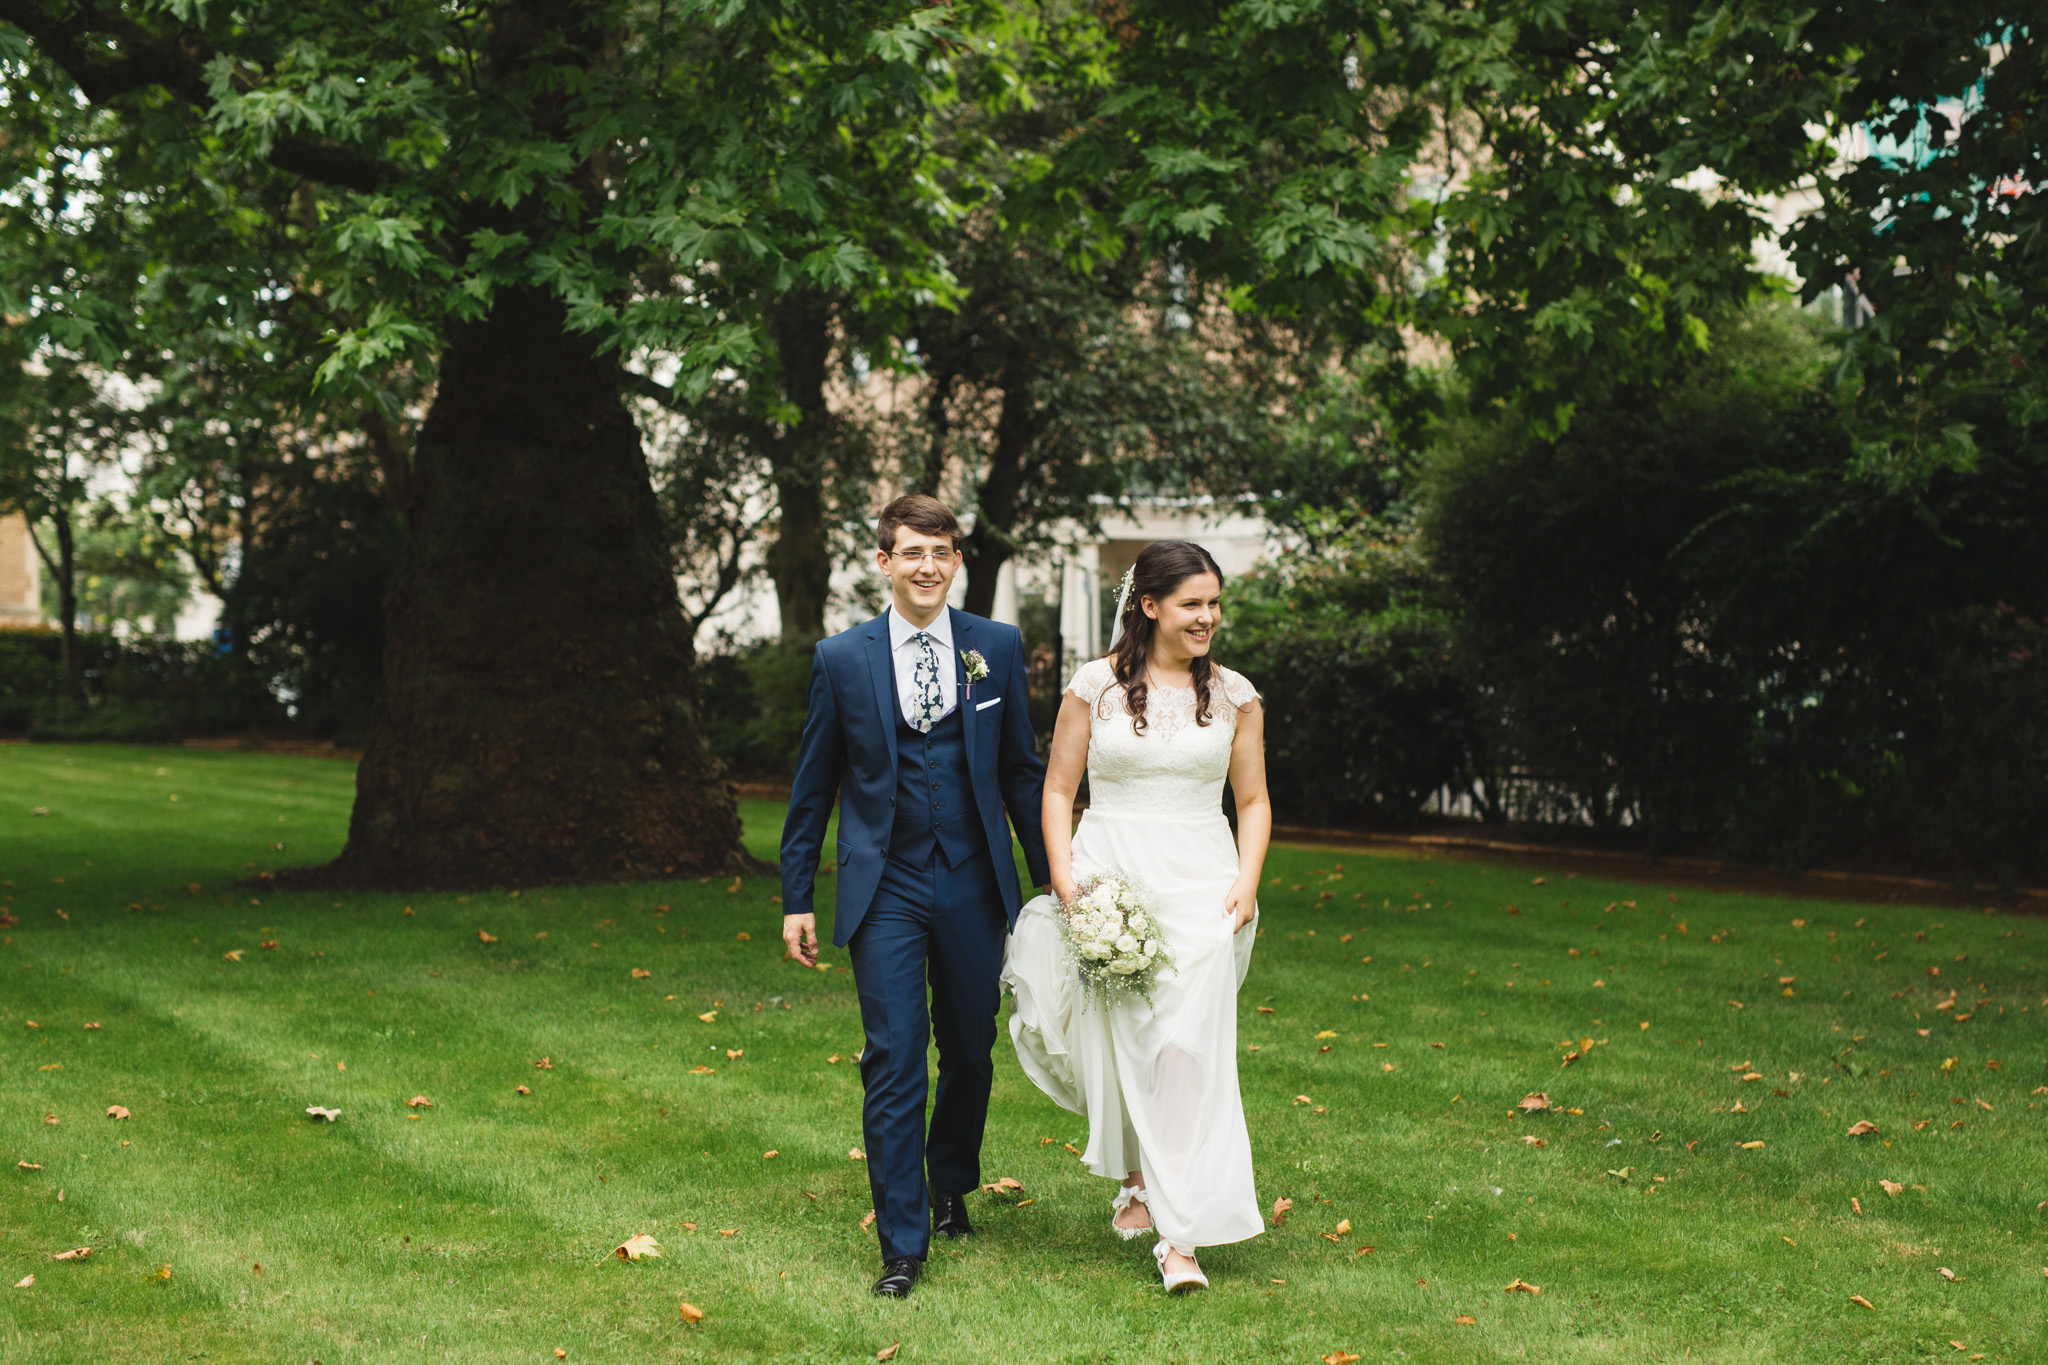 st-michaels-church-chester-square-london-wedding-photography_web__1450__C5A2629.jpg